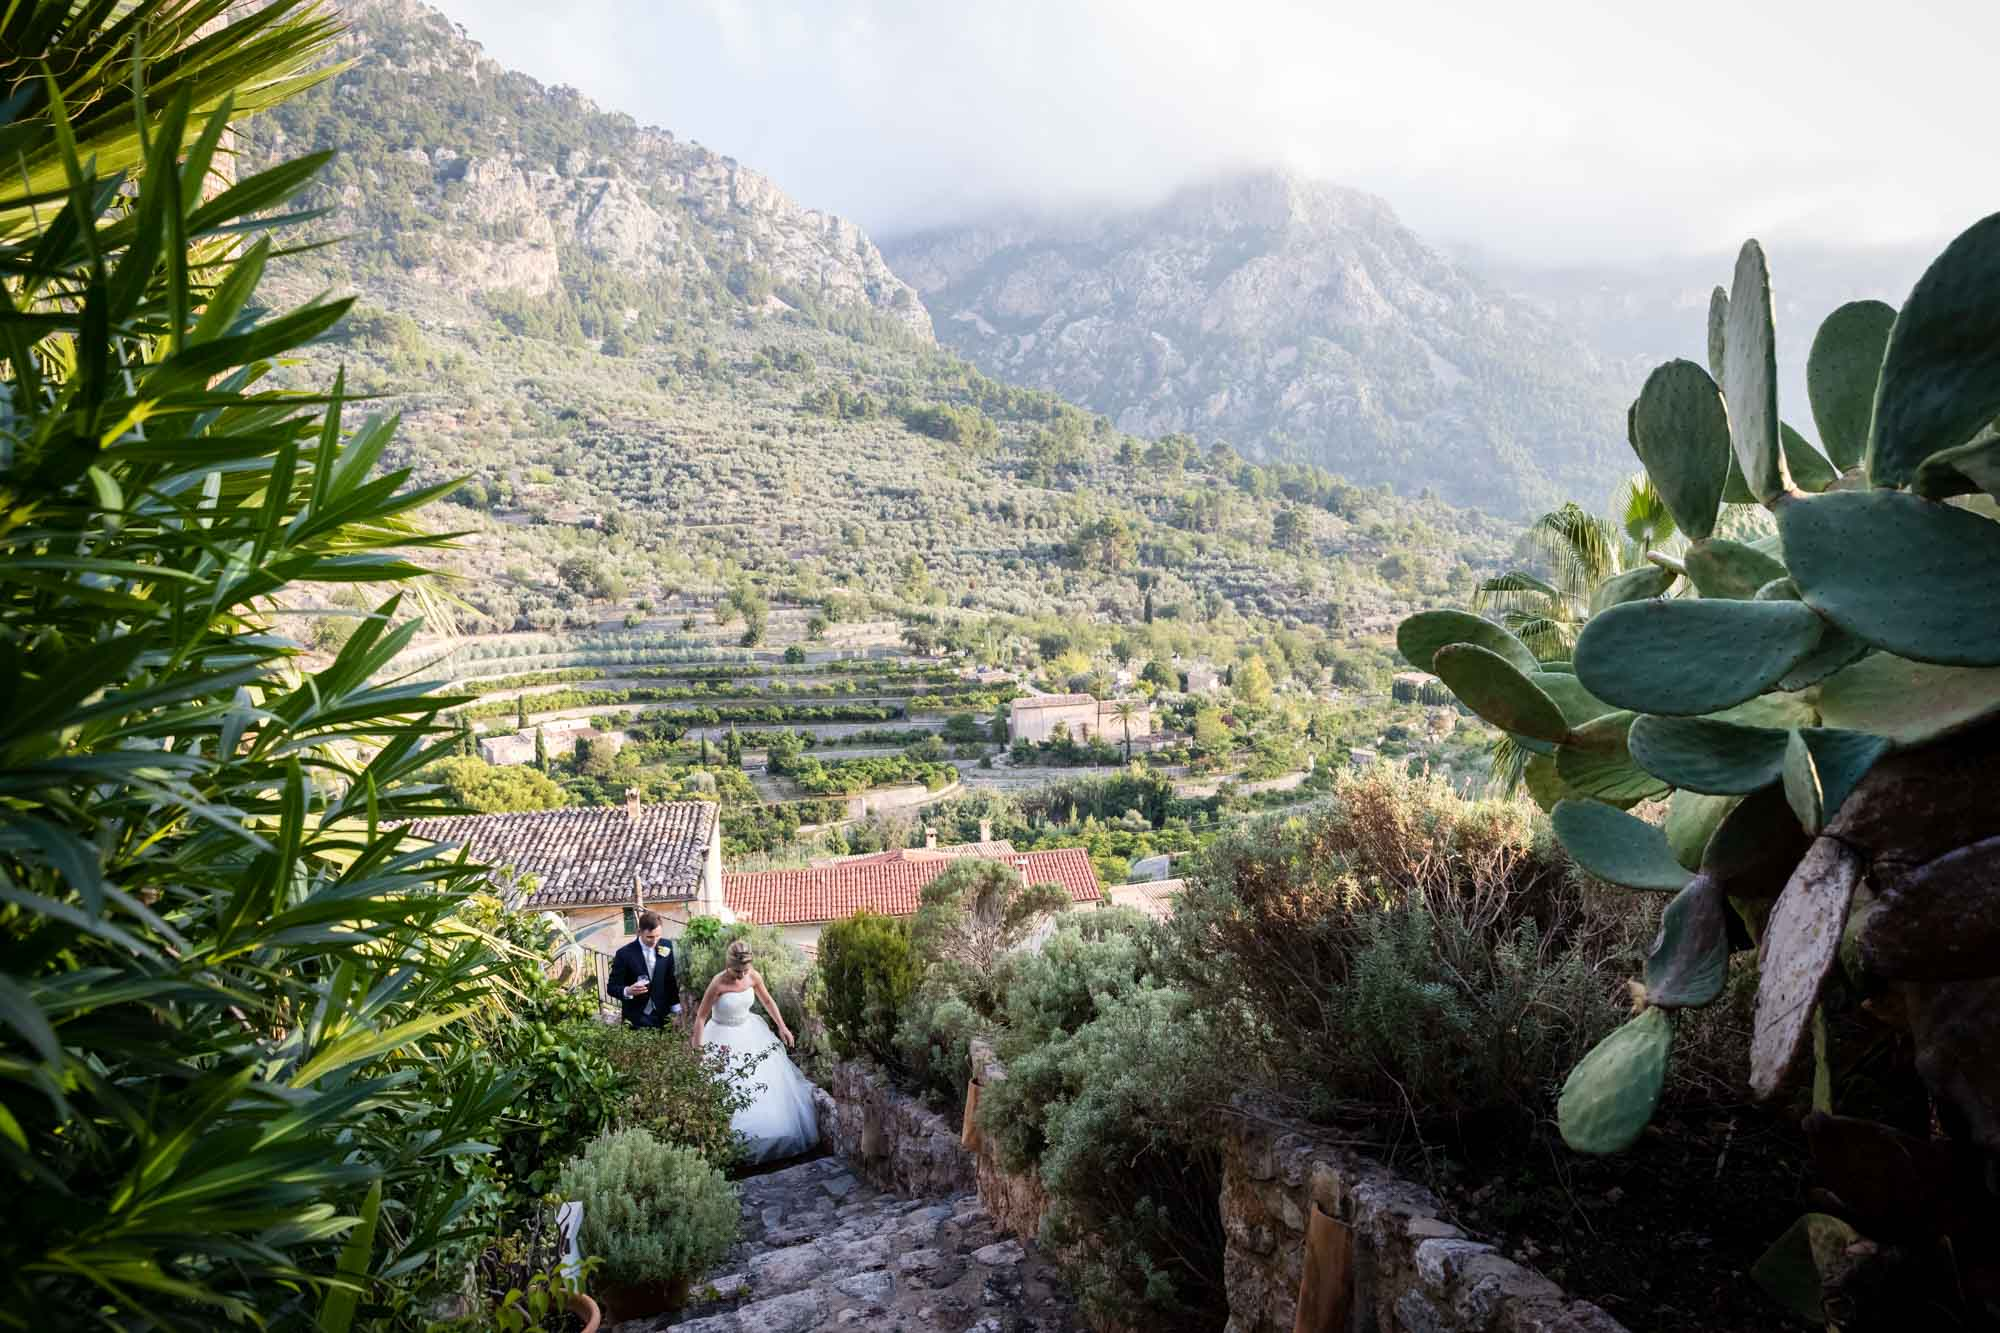 A beautiful view across the valley in Fornalutx as the bride and groom walk to their wedding breakfast at Hotel Can Vedera in Mallorca